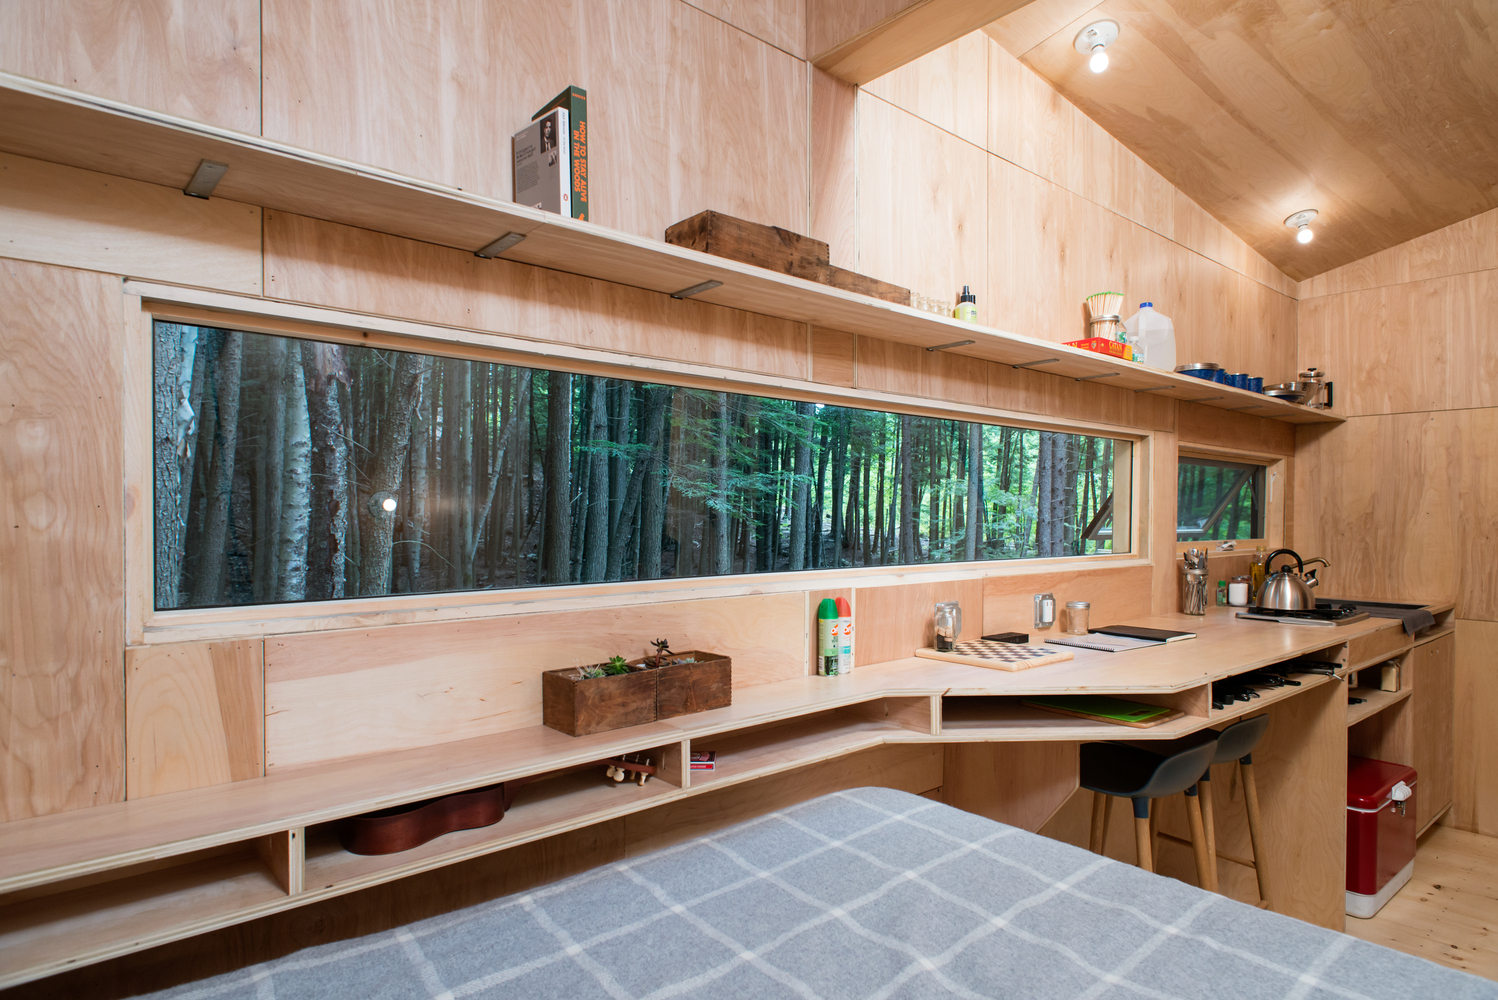 Gallery Of A Tiny Luxury What Are Tiny Houses Really Saying About